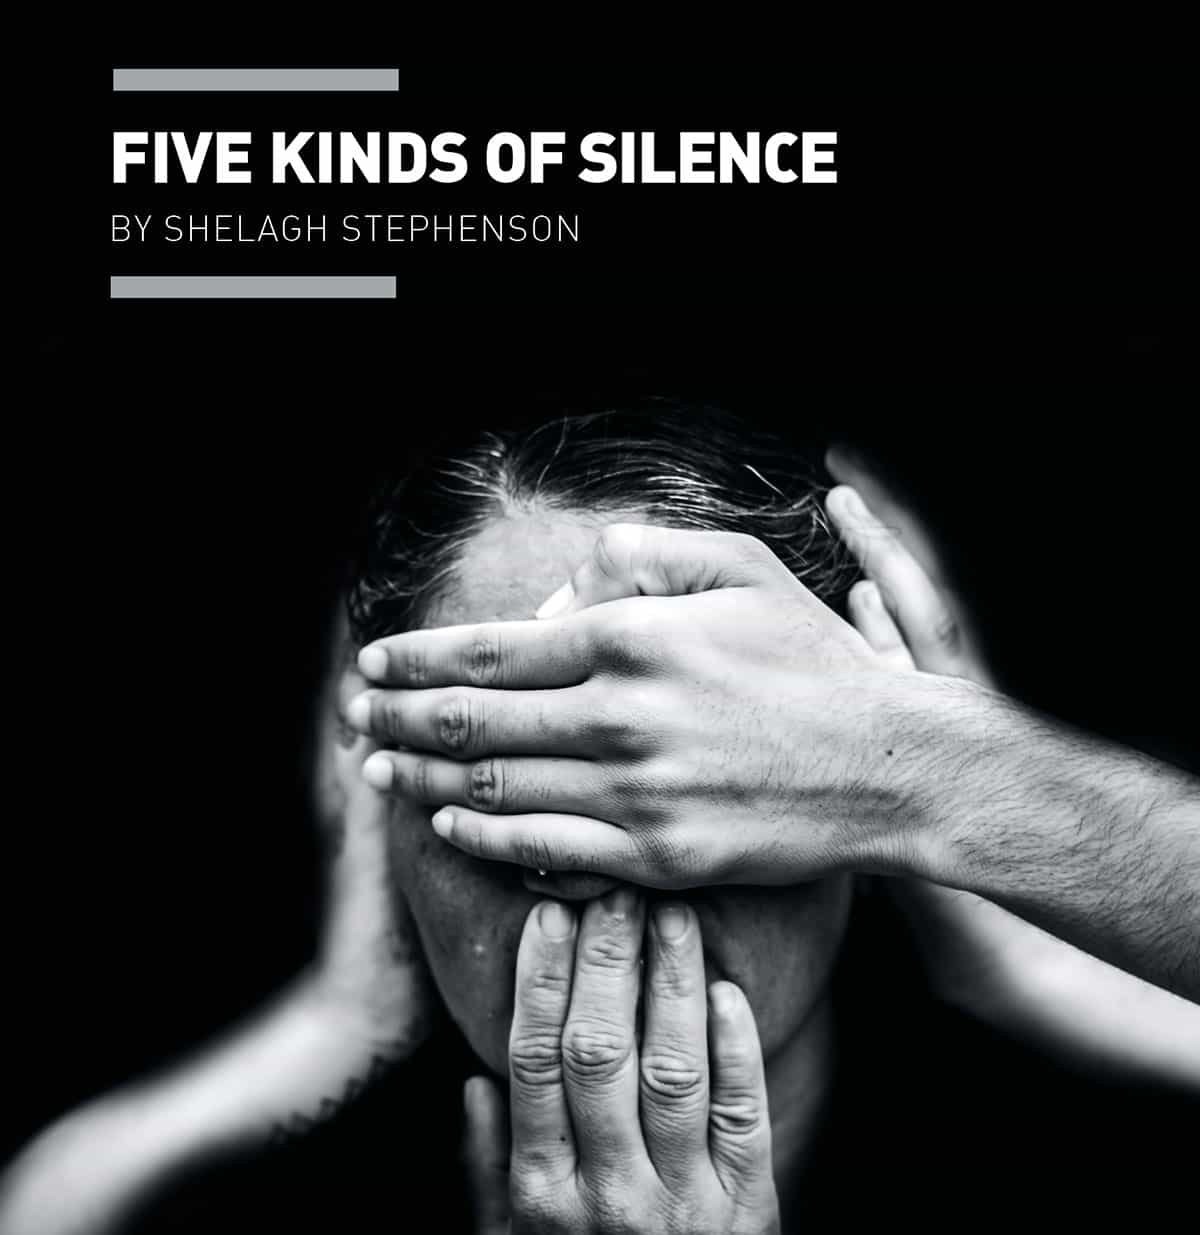 Five Kinds of Silence by Shelah Stephenson, radio play from Masquerade Theatre